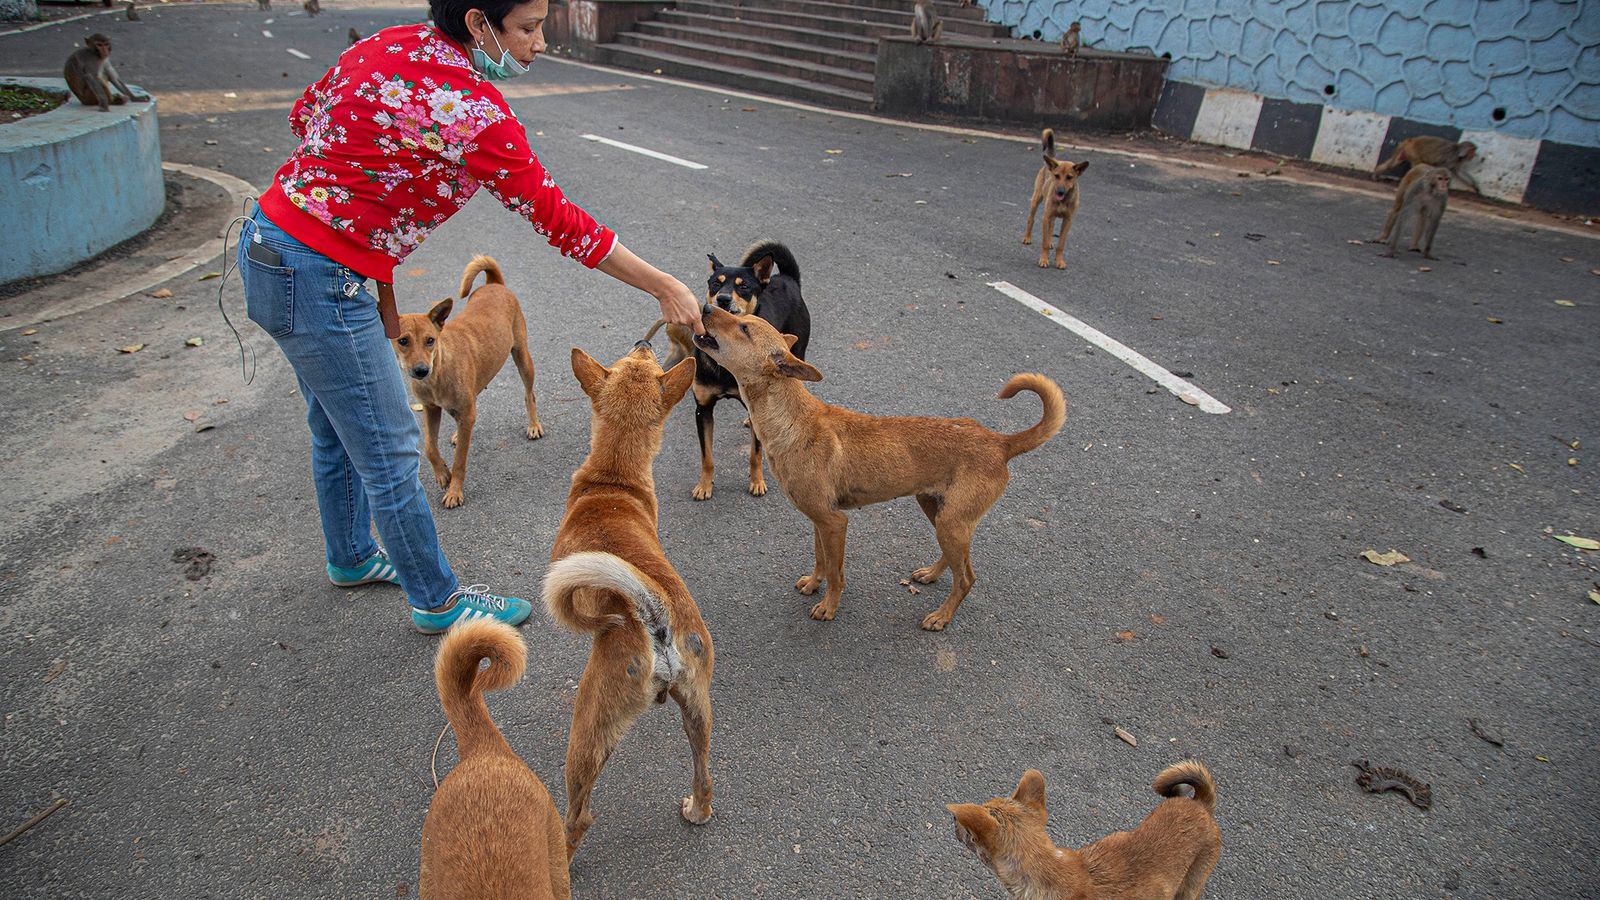 Indian social worker Oineetam Oza feeds stray dogs and monkeys biscuits near a Hindu temple in ...